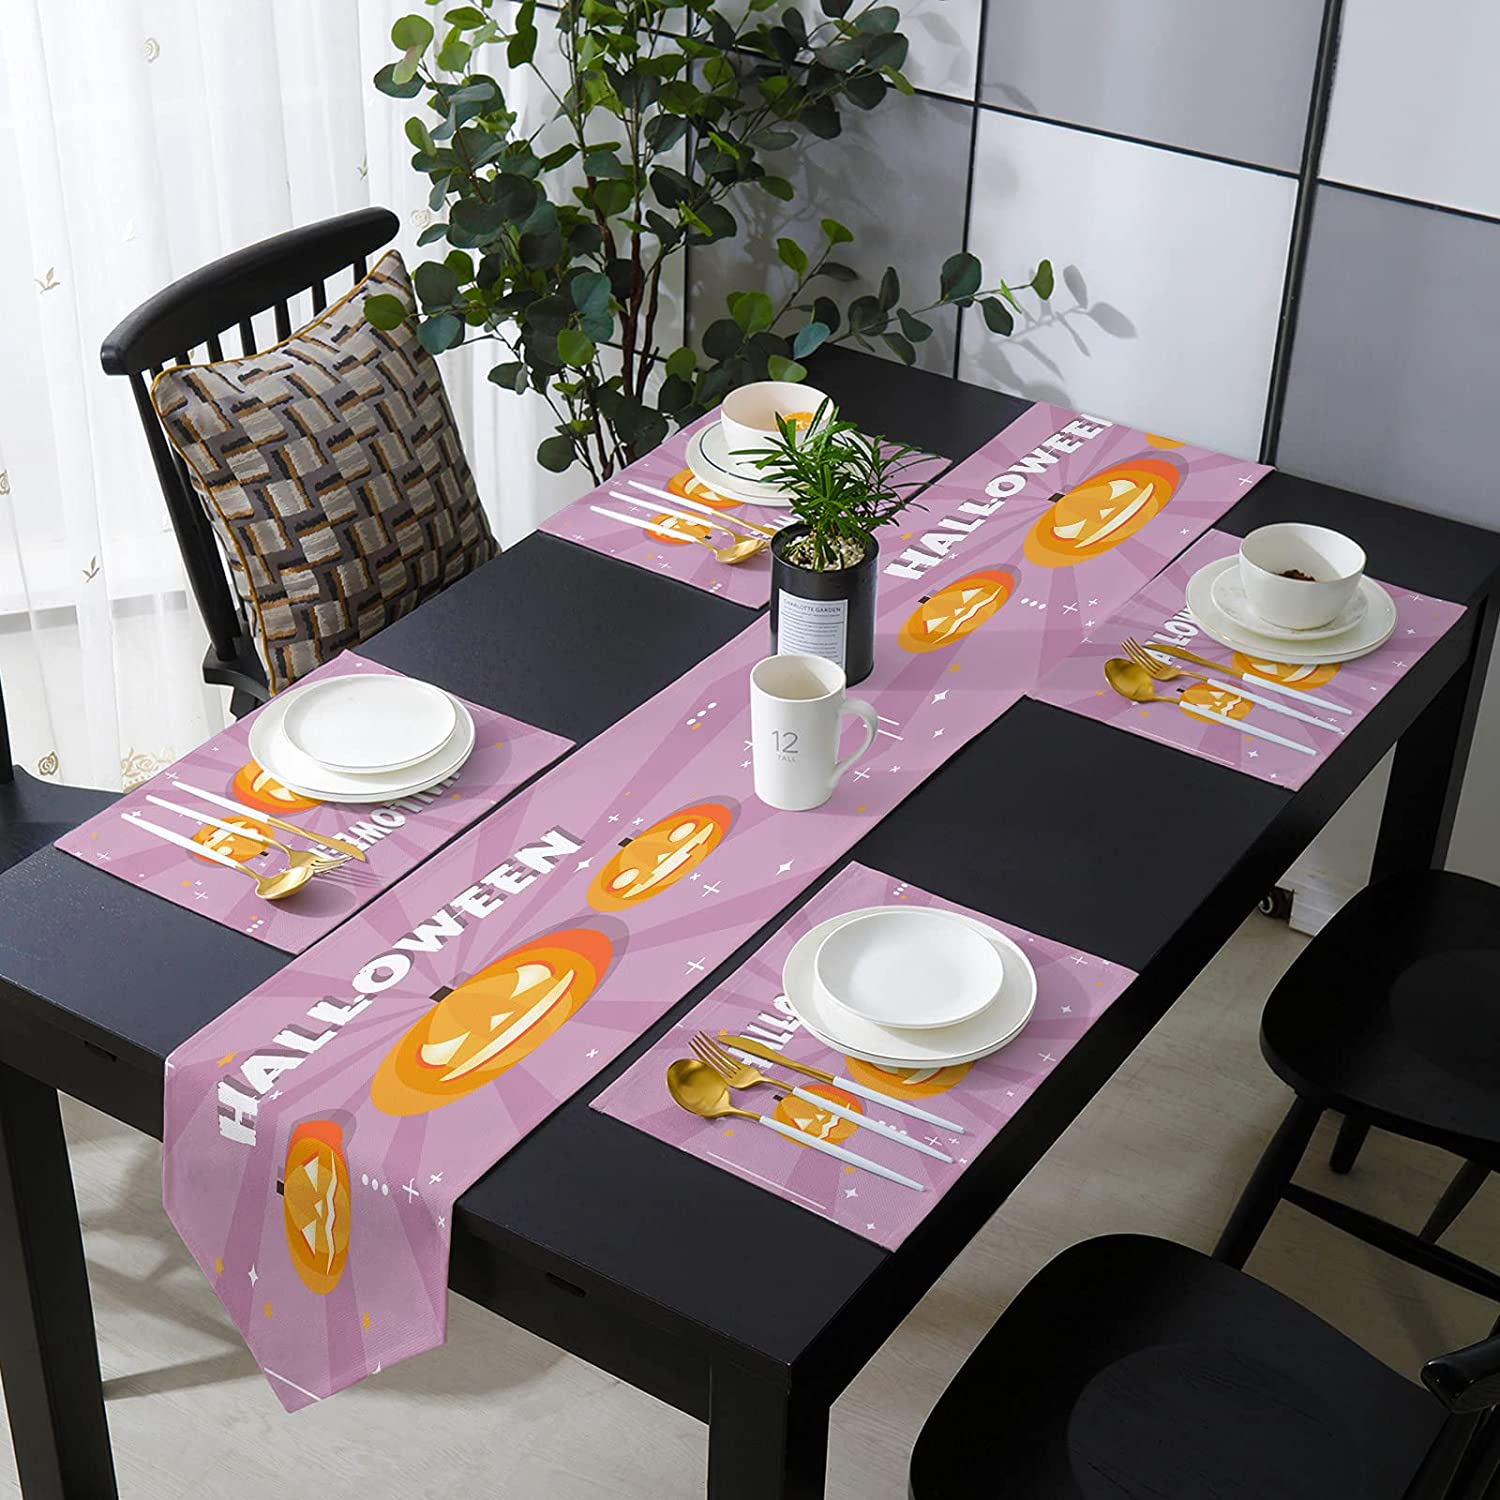 Aomike Placemats and Table Runner 13 x for Max 79% OFF Ta inch Ranking TOP14 Set Dining 90